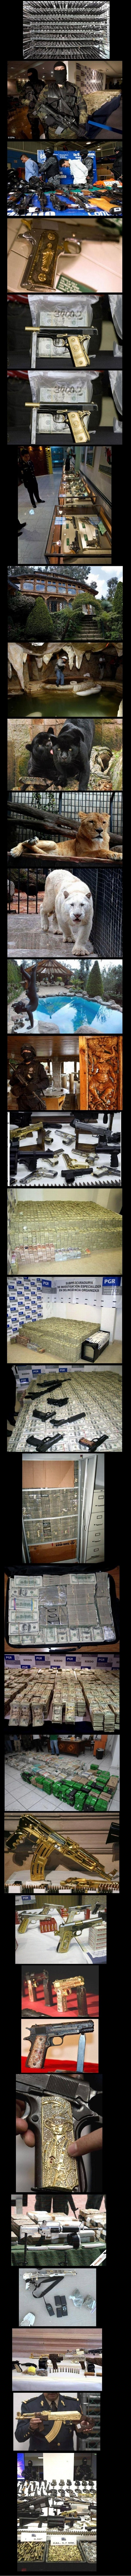 How Rich Is The Drug Lord